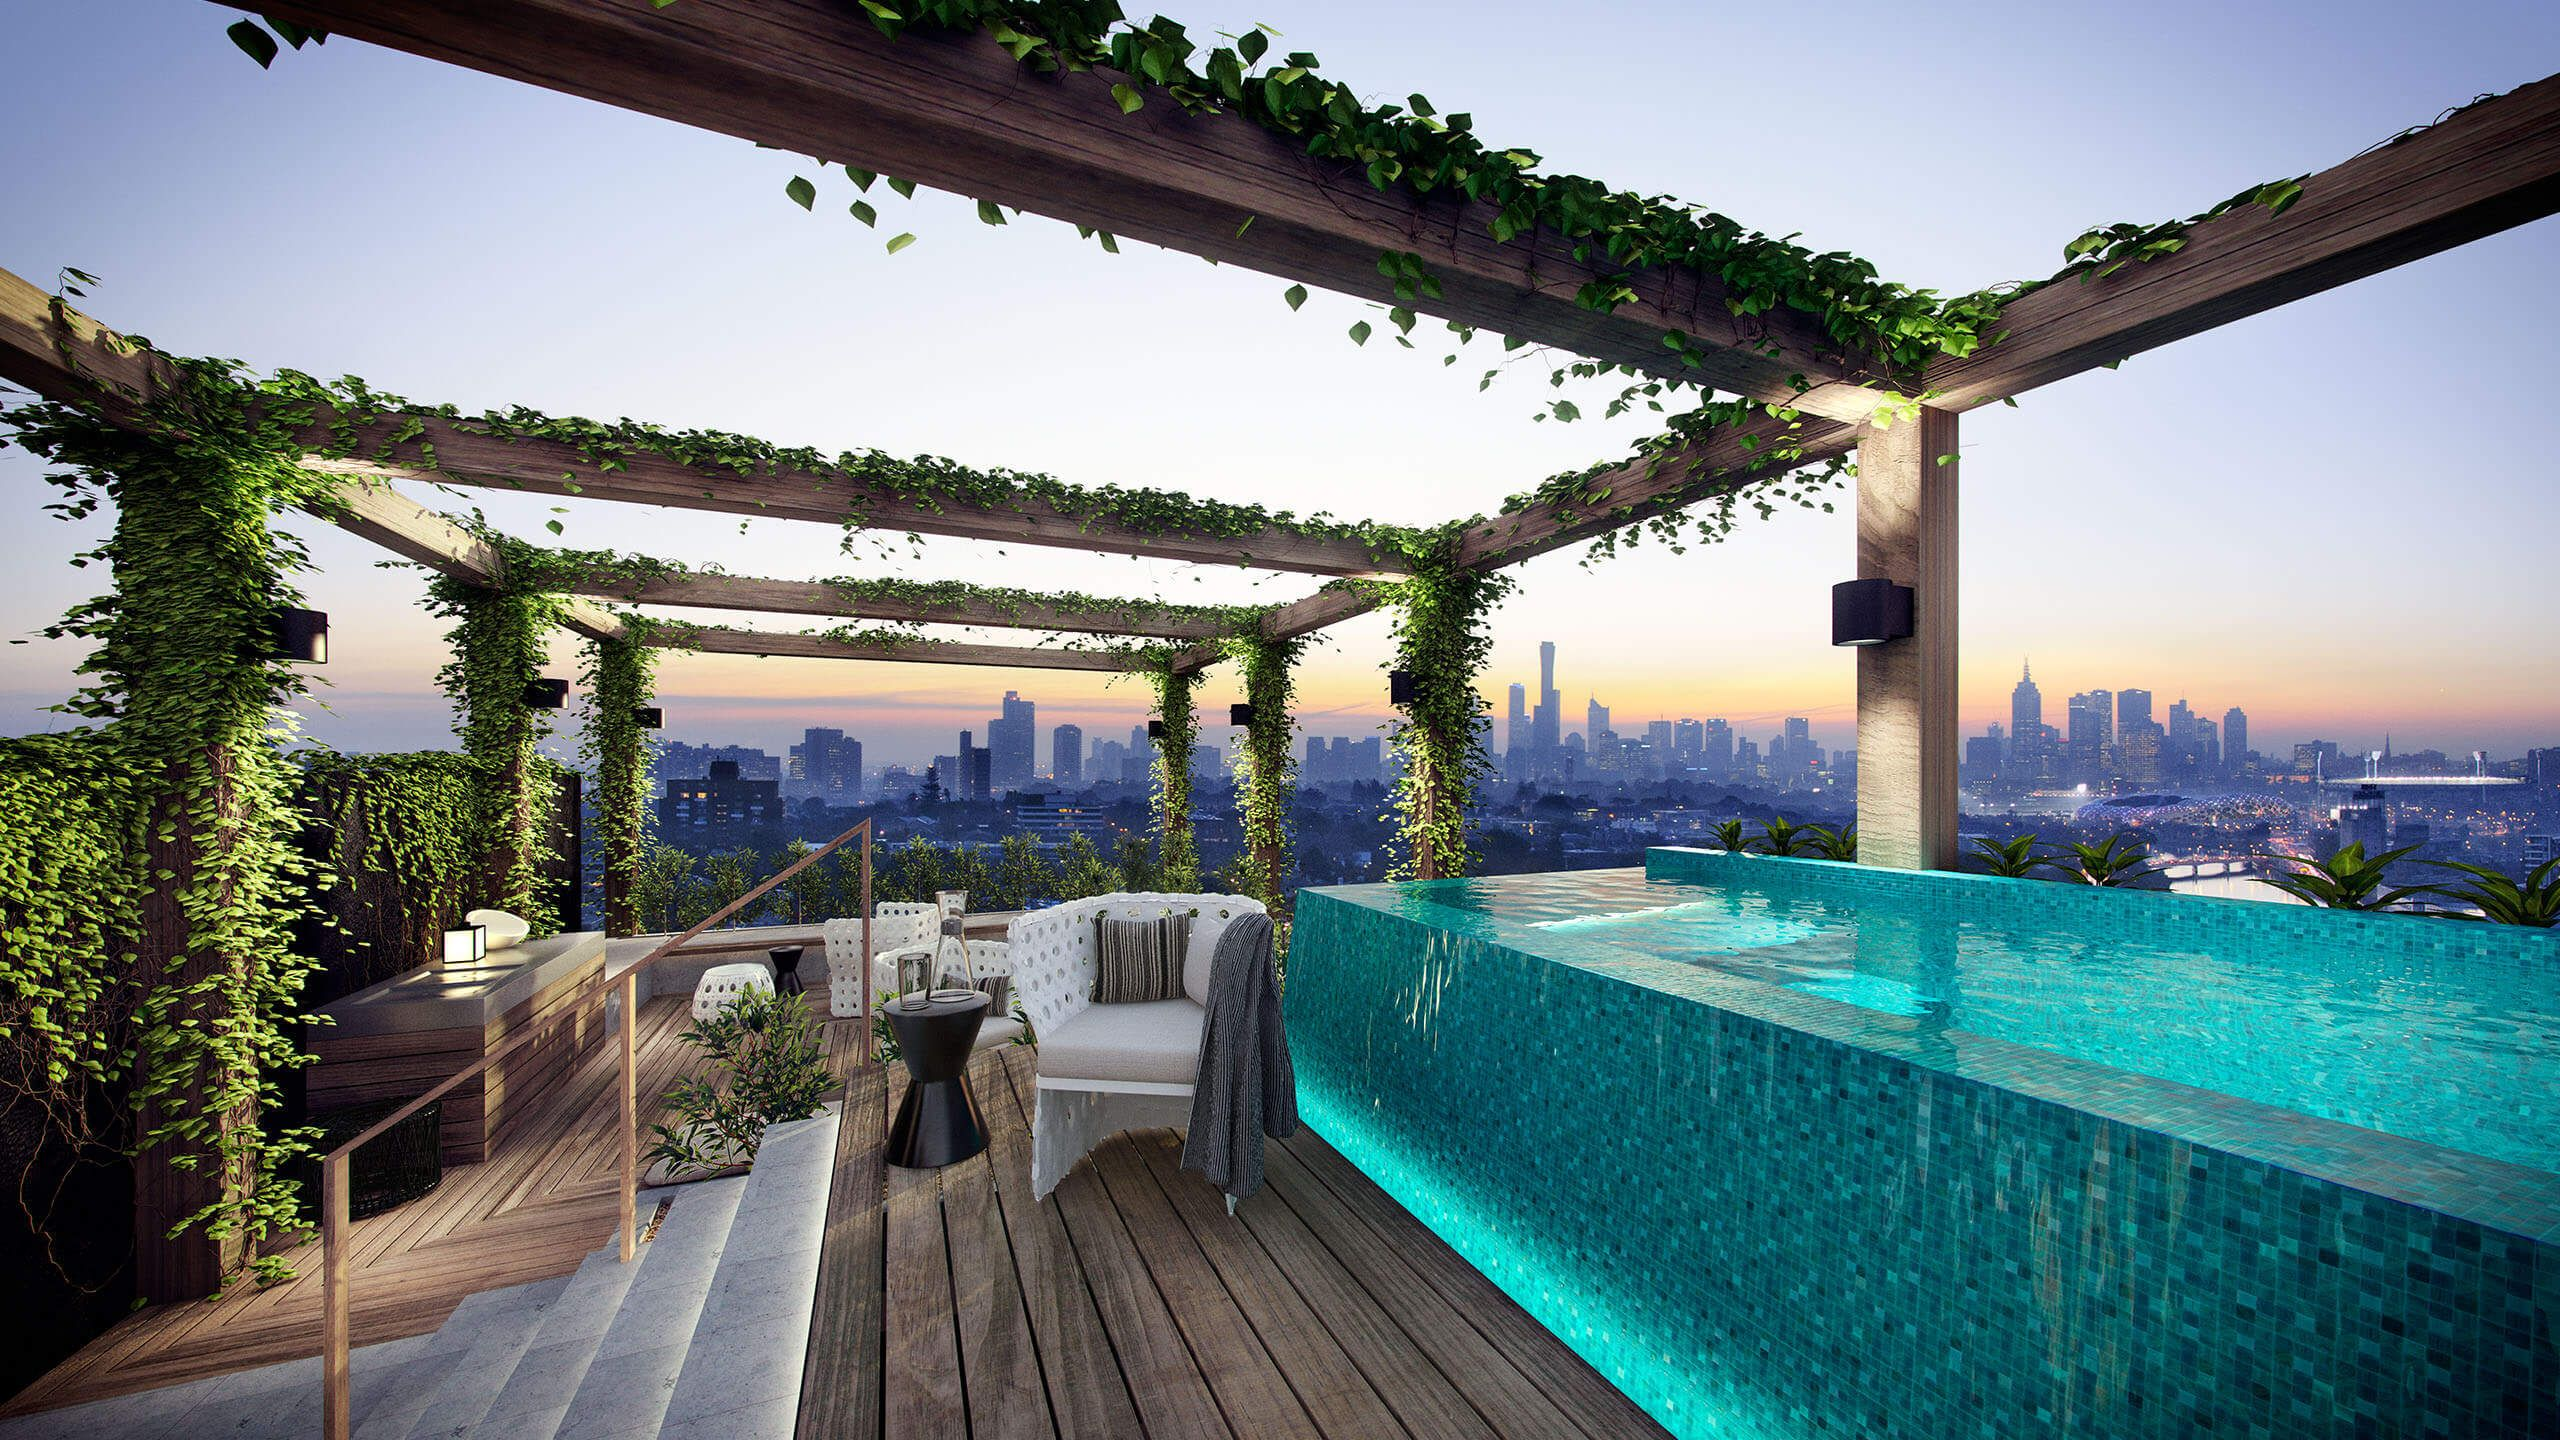 Some Of The Best Rooftop Swimming Pool Design Ideas